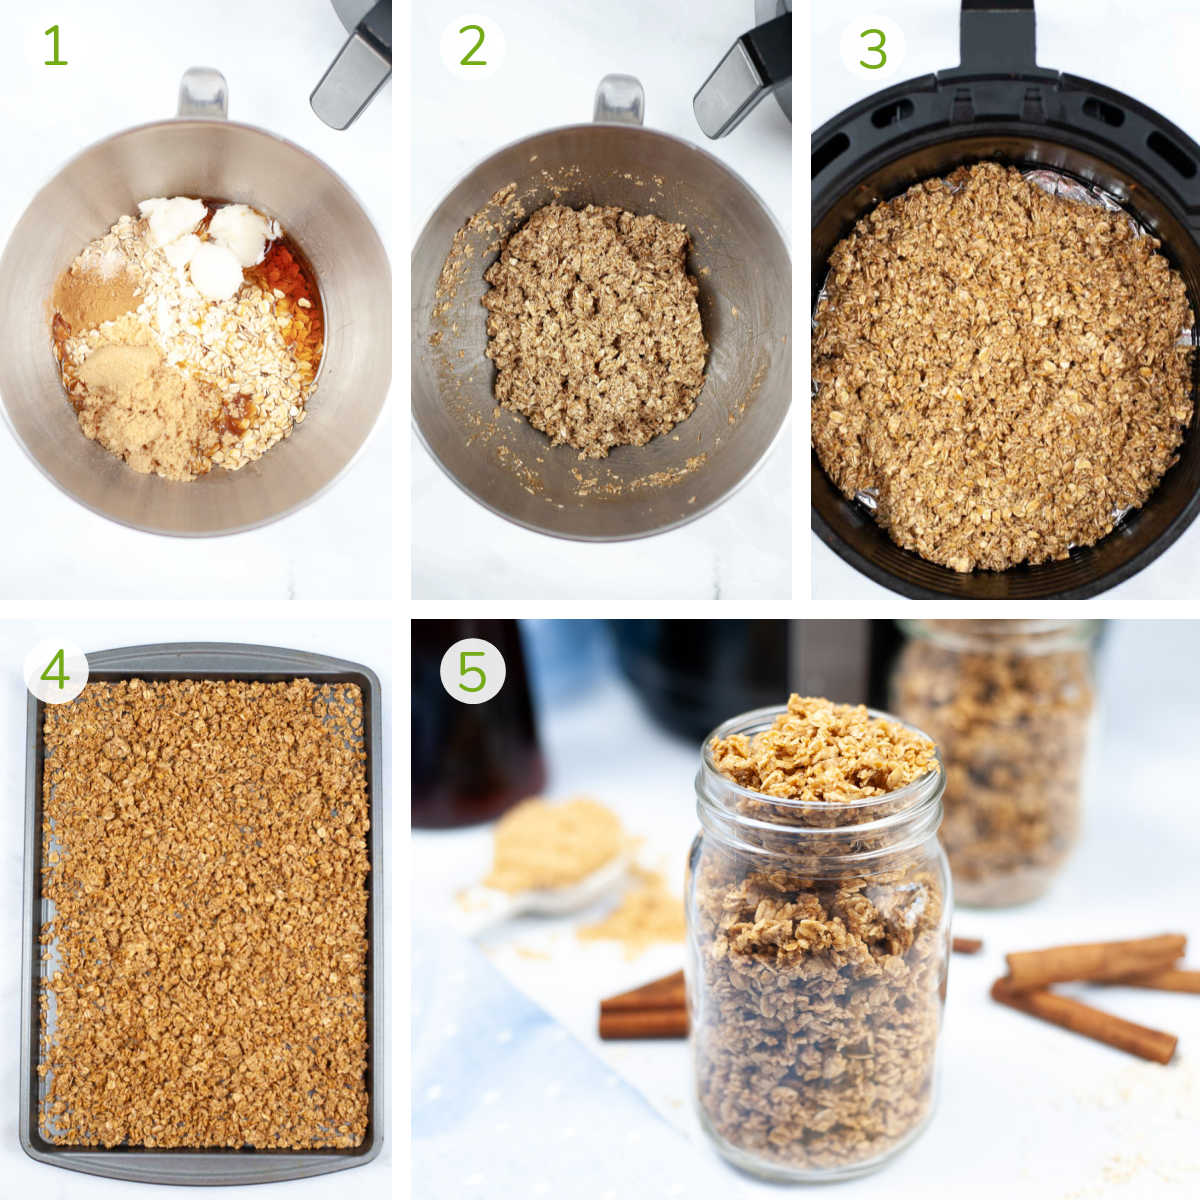 process photos showing mixing the ingredients with the granola and cooking in the air fryer.